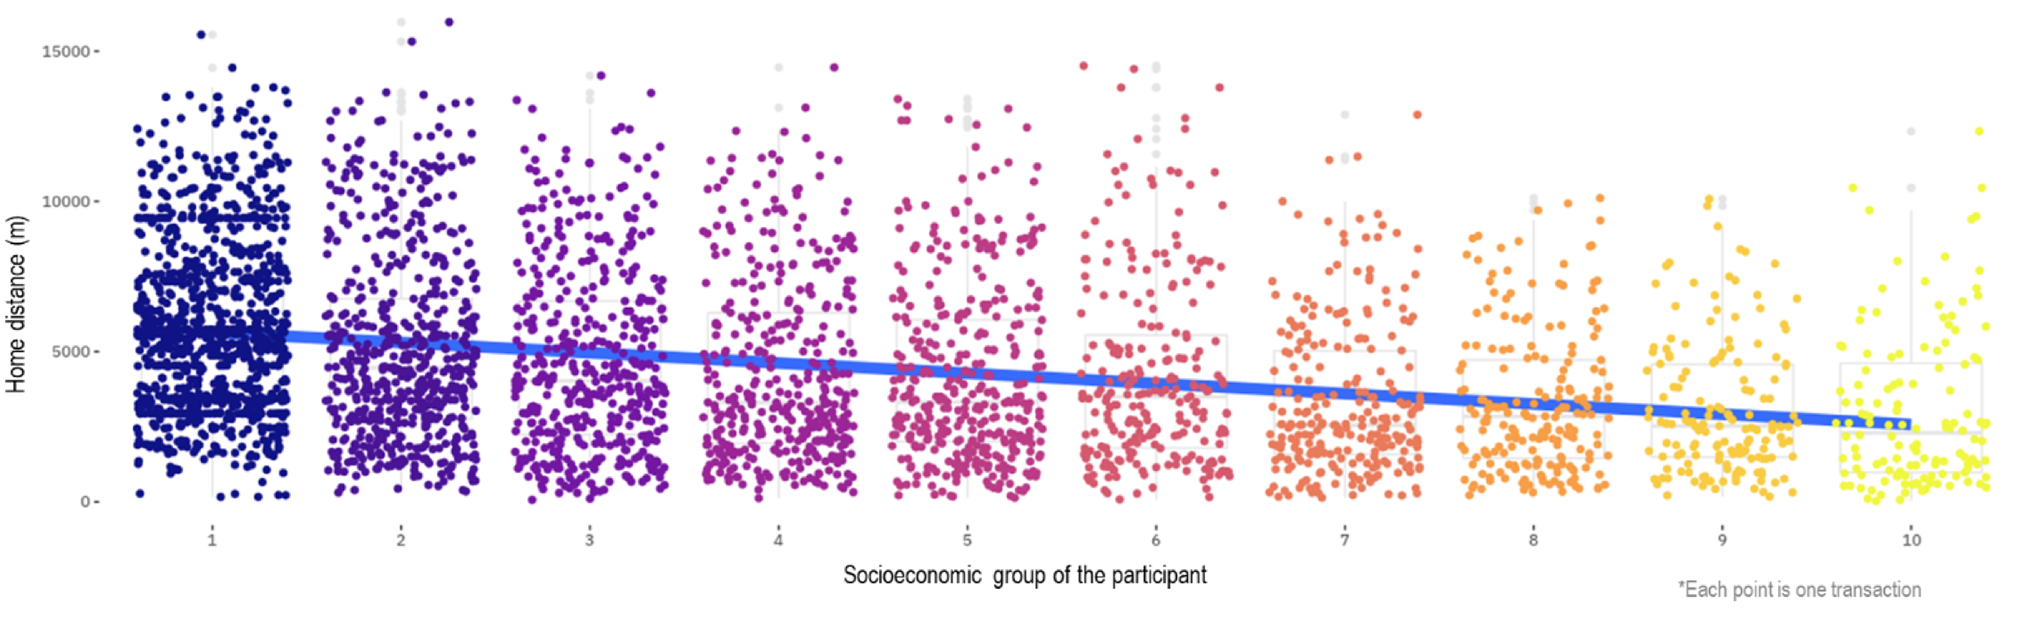 Fig.4 Home and visited cultural space distance (distance in the Y axis, and socio-economic deciles of the user in the X axis, where yellow is the richest)